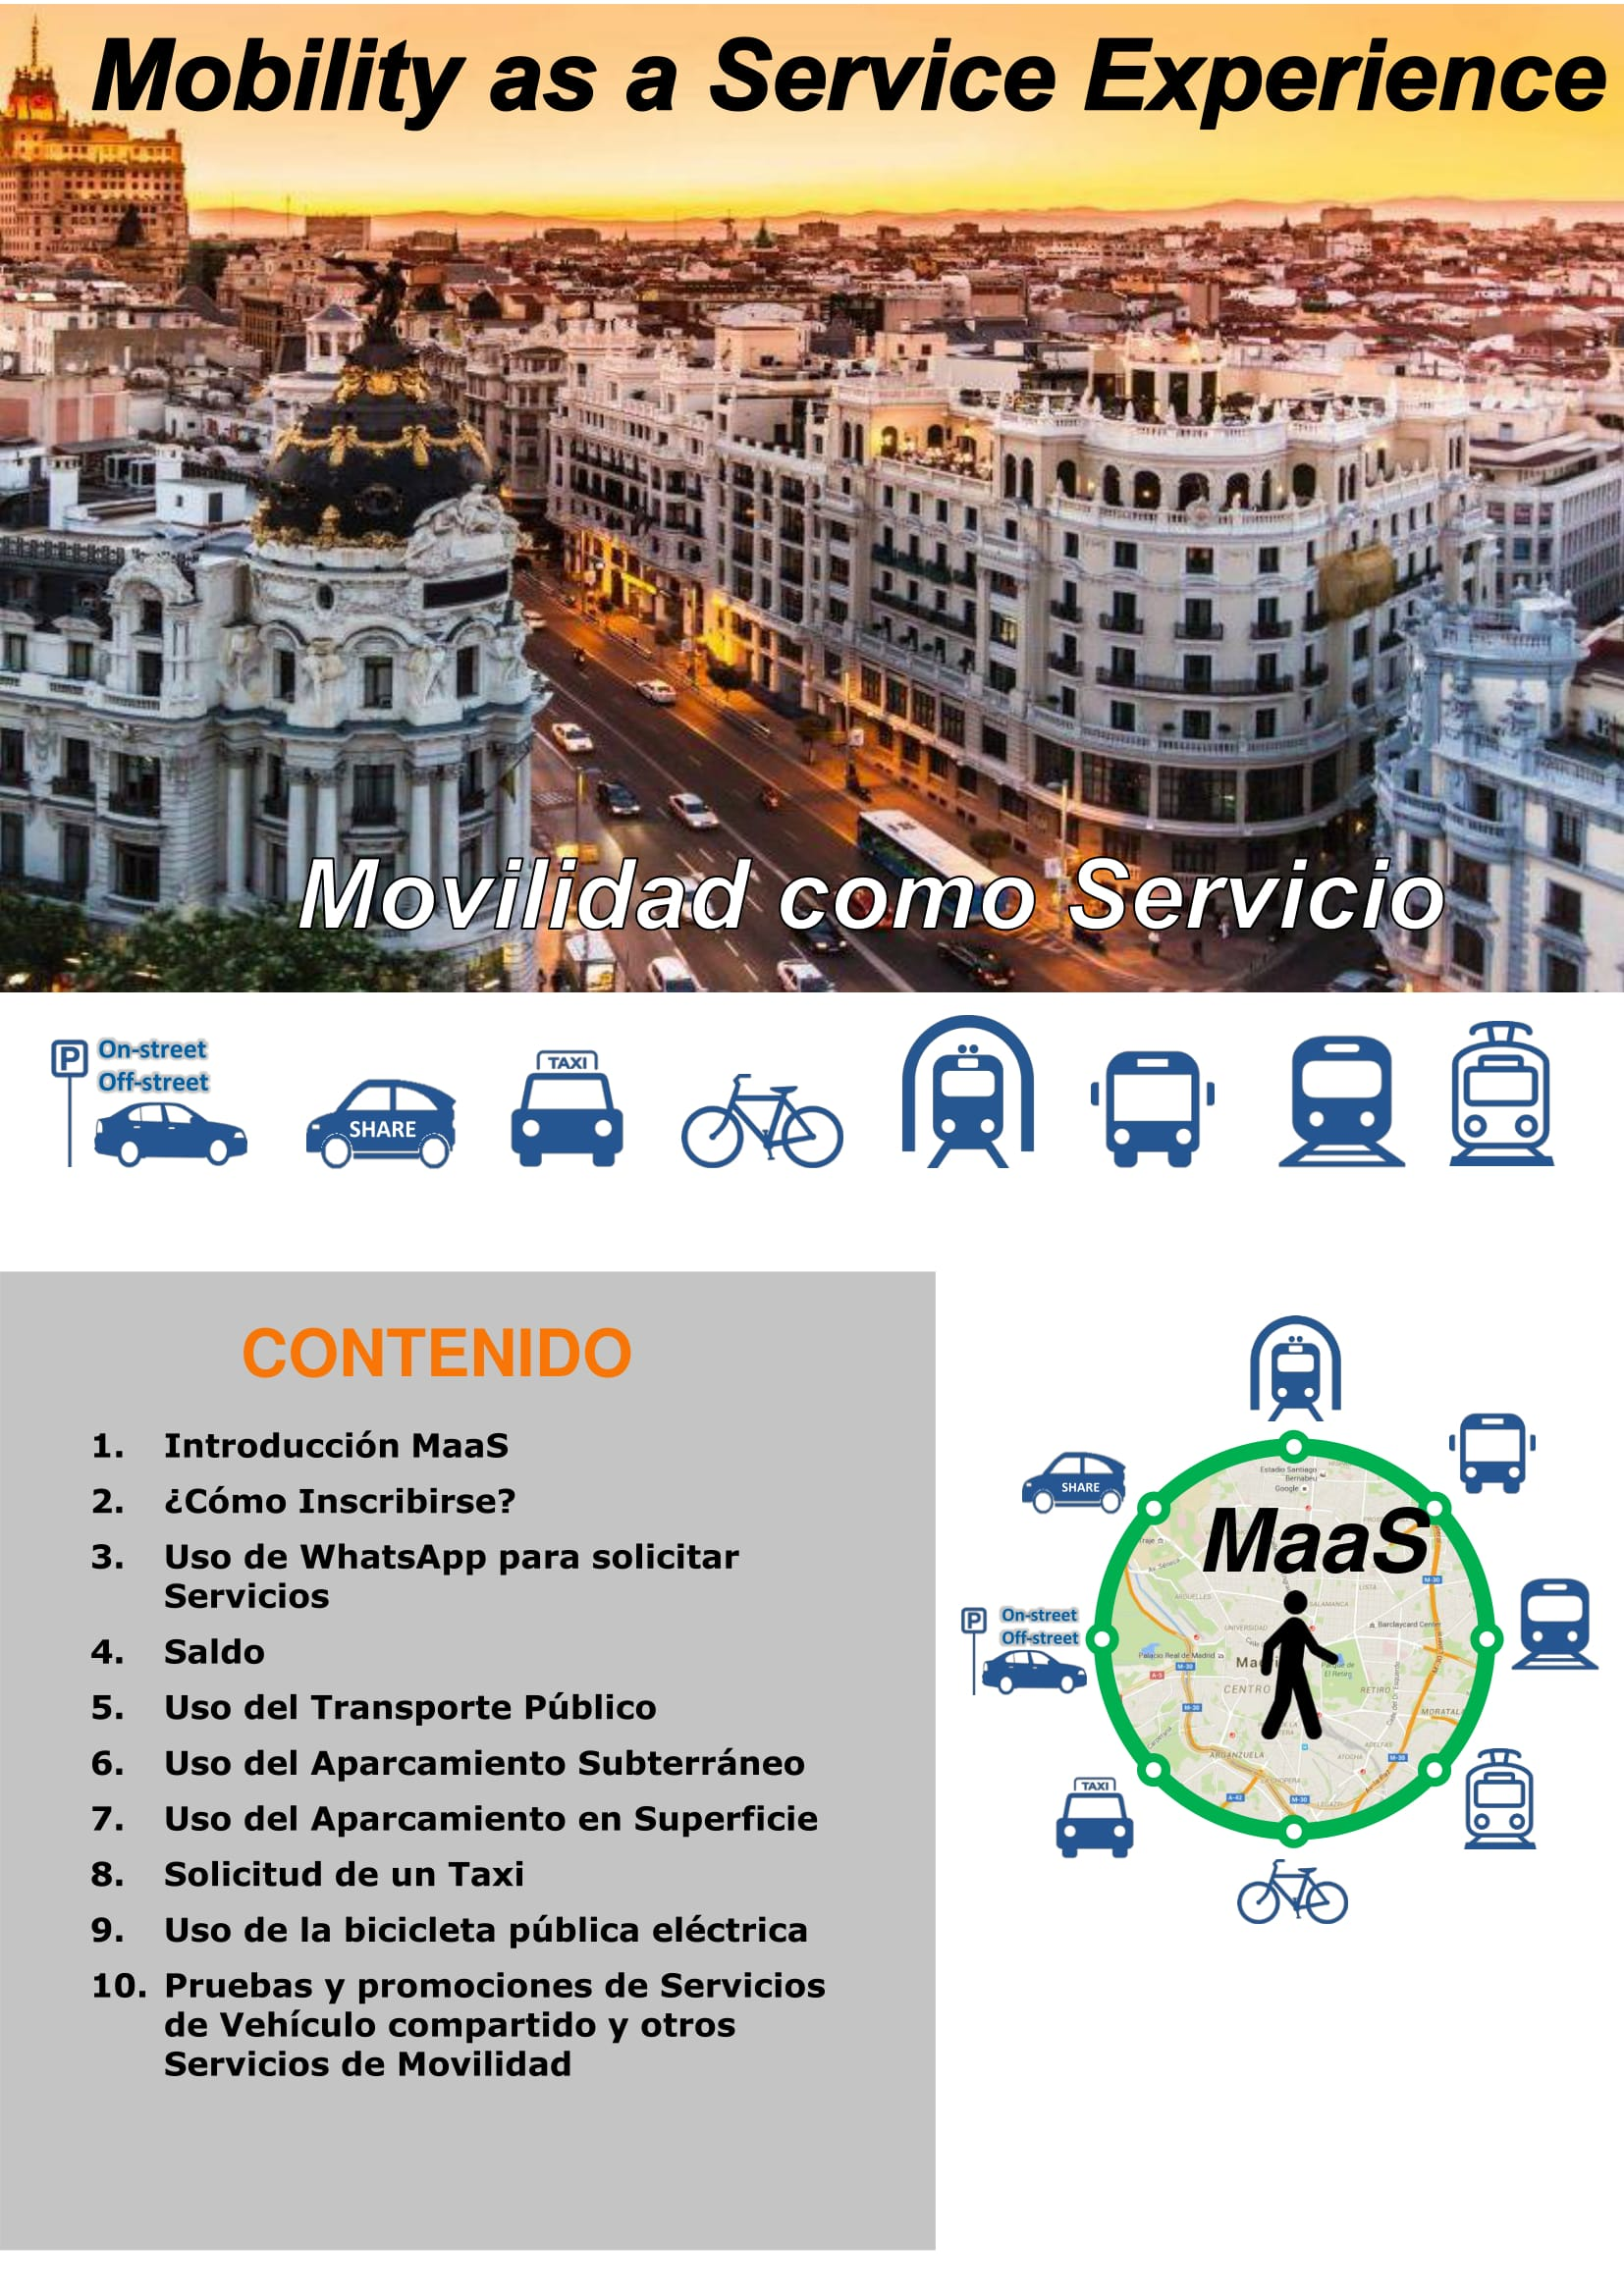 20160517-maas-experience-congreso-its-1